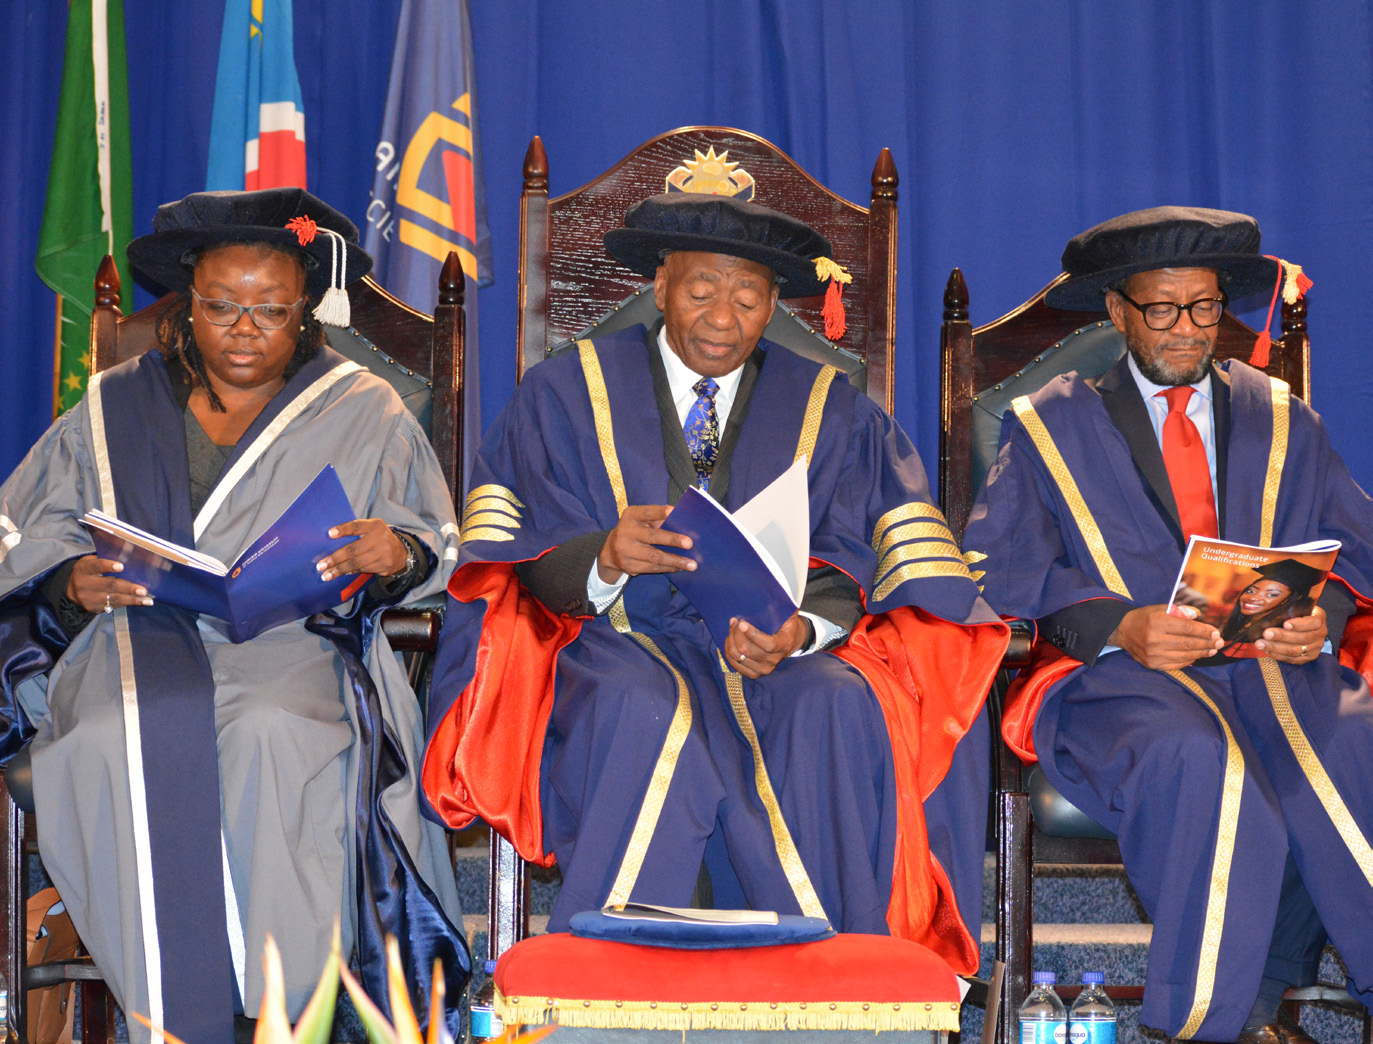 FROM LEFT: Kondjeni Nkandi, NUST Council Member; Hon Prof Peter Katjavivi, NUST Chancellor, and Dr Tjama Tjivikua, NUST Vice-Chancellor pictured paging through the Graduatuion booklets during the Graduation Ceremony last week Friday.